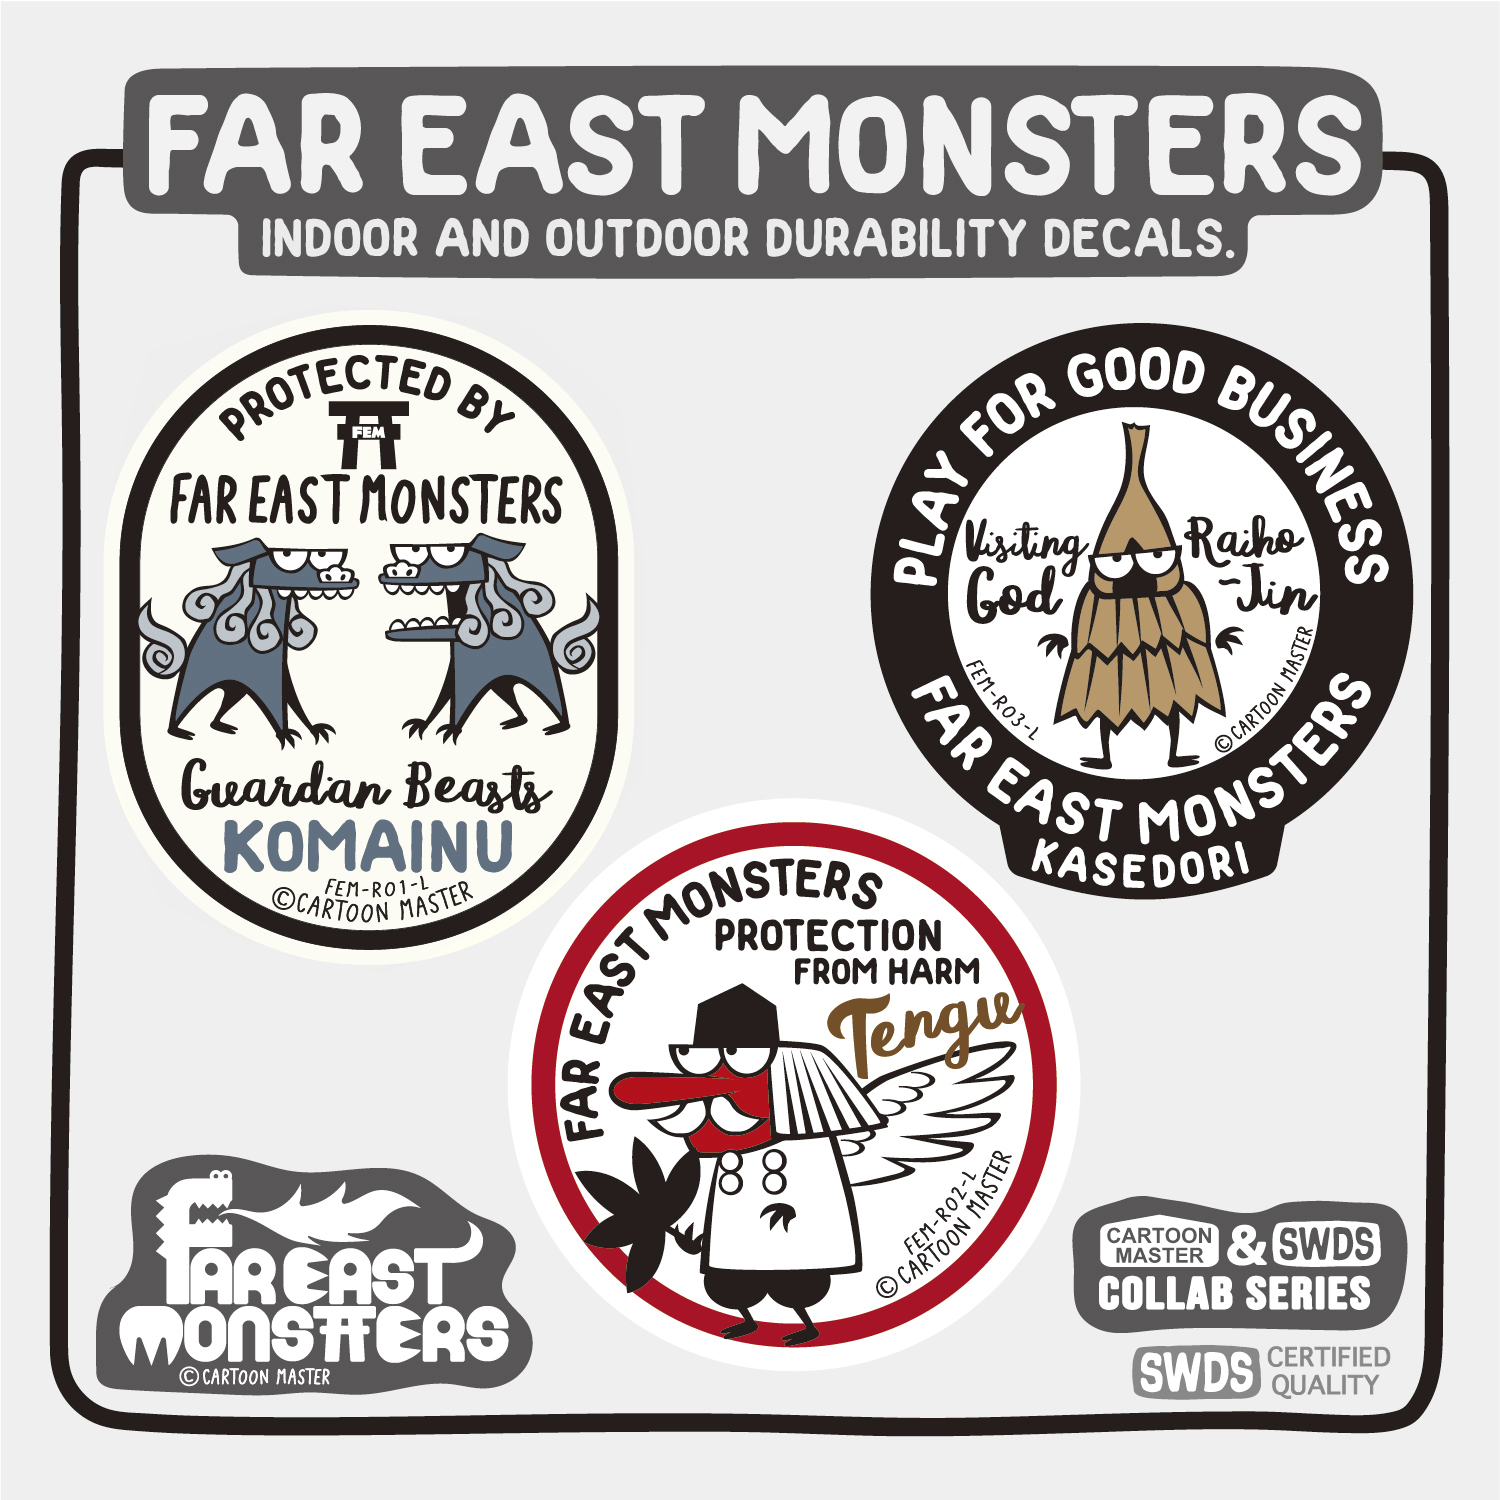 FAR EAST MONSTERS